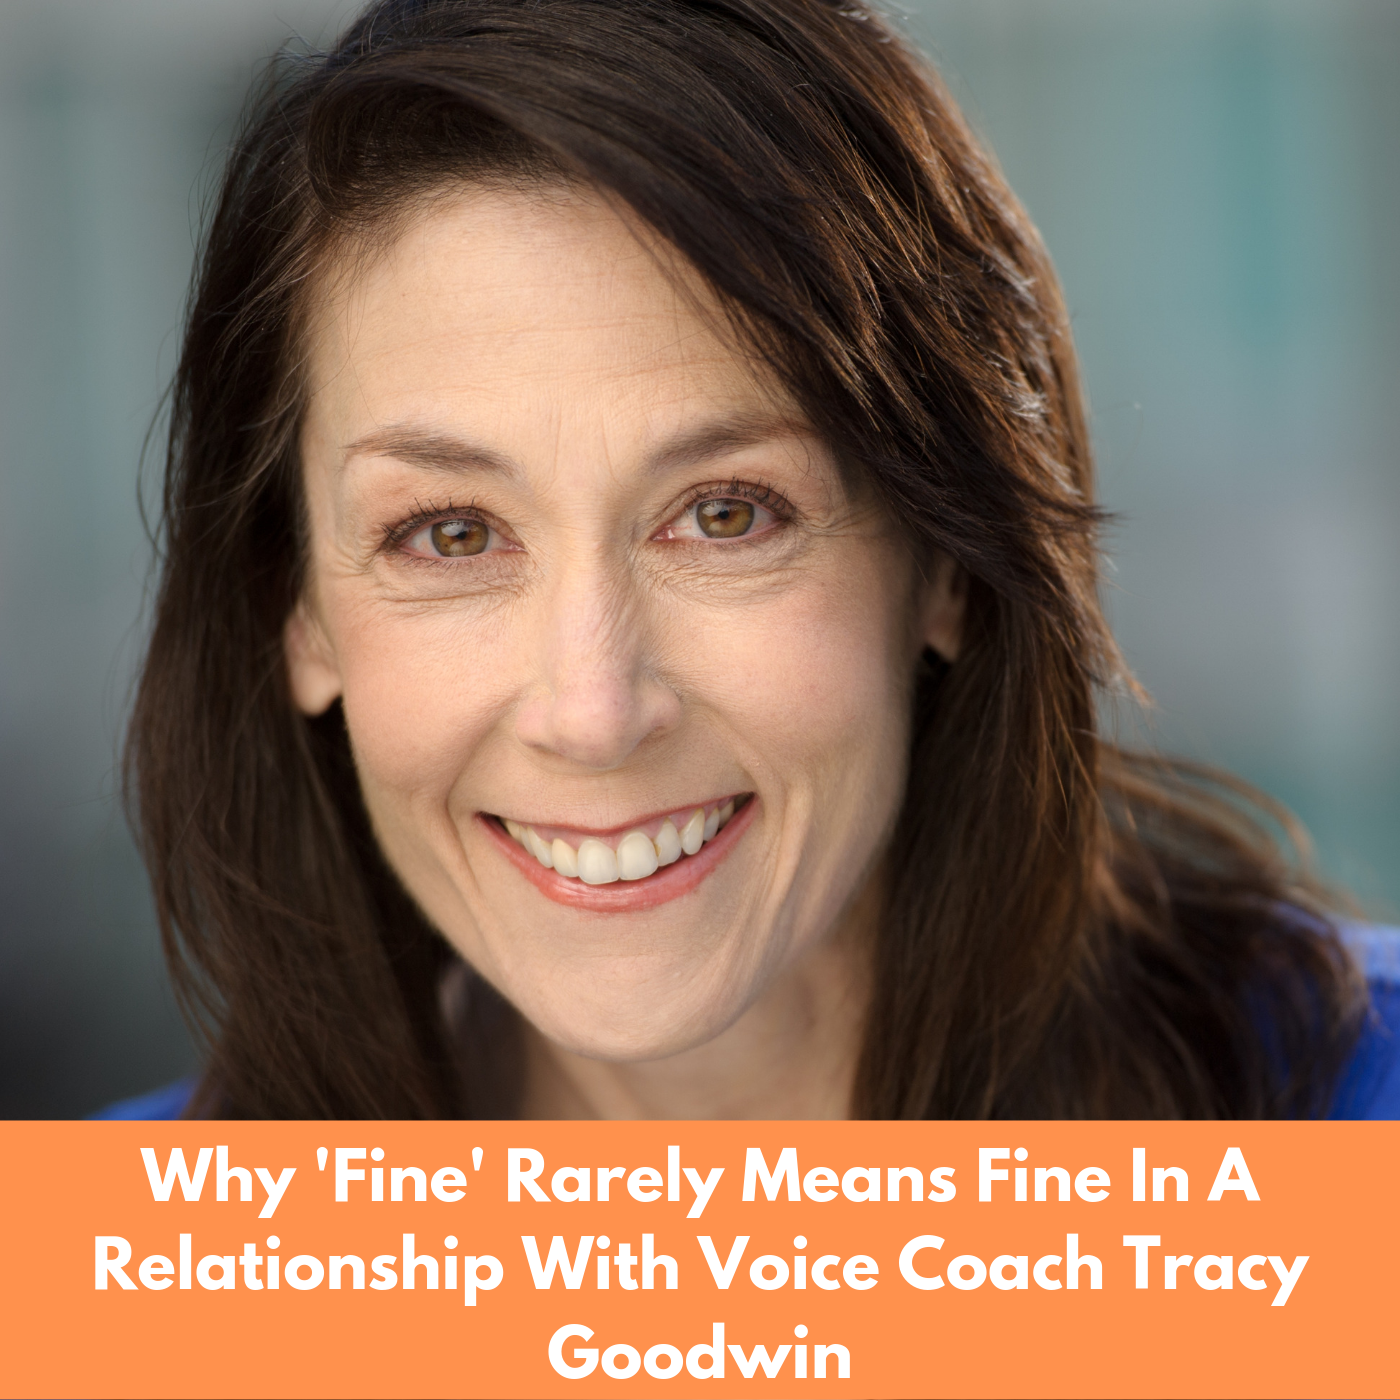 Why 'Fine' Rarely Means Fine Within A Relationship With Voice Coach Tracy Goodwin